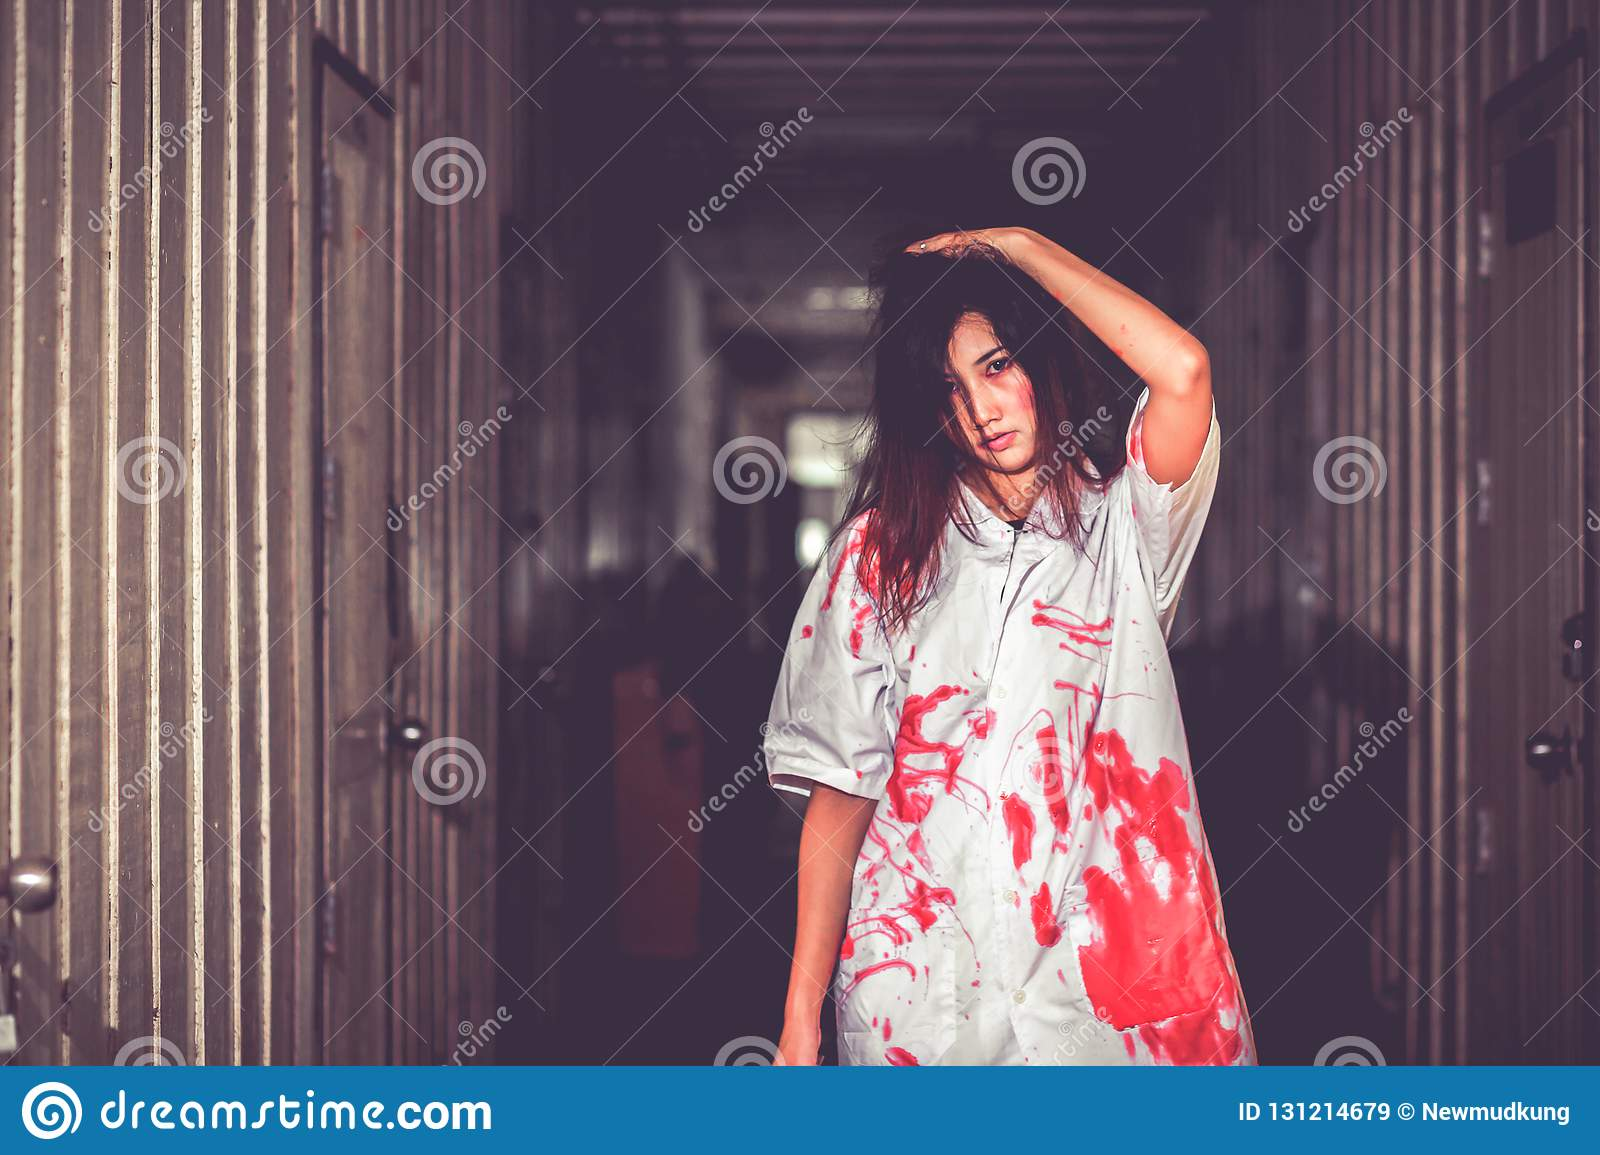 A Woman holding knife with blood, halloween concept.